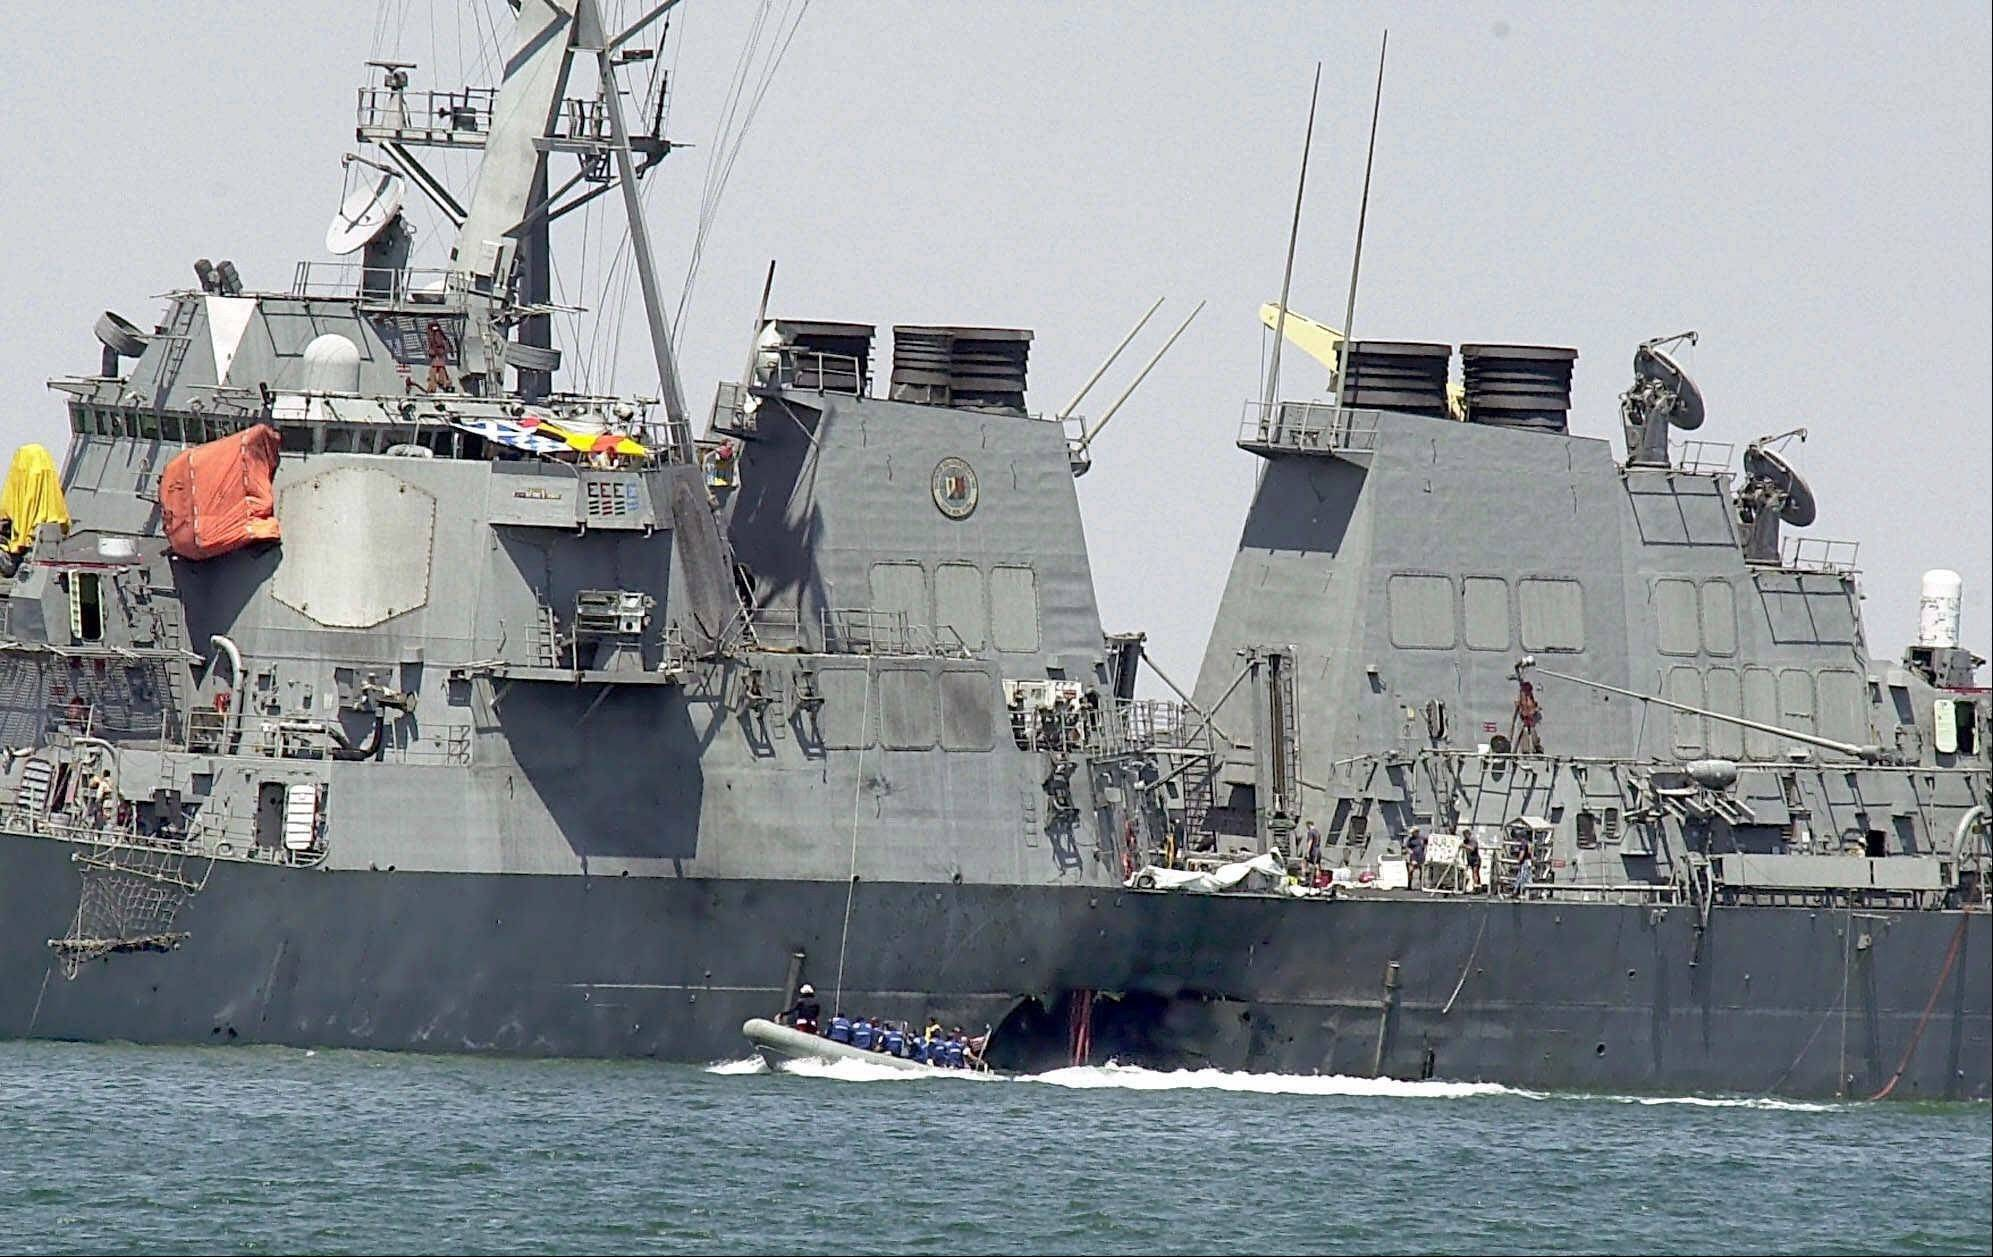 In this Oct. 15, 2000, file photo, investigators in a speed boat examine the hull of the USS Cole at the Yemeni port of Aden, after a powerful explosion ripped a hole in the U.S. Navy destroyer. Abd al-Rahim al-Nashiri, a Saudi national accused in the 2000 bombing of the USS Cole warship, faces trial in a special tribunal for wartime offenses known as a military commission for allegedly orchestrating the bombing of the USS Cole as well as attacks on two other ships. But his lawyers say that since the U.S. wasn�t at war at that time, the 47-year-old shouldn�t be tried at Guantanamo.